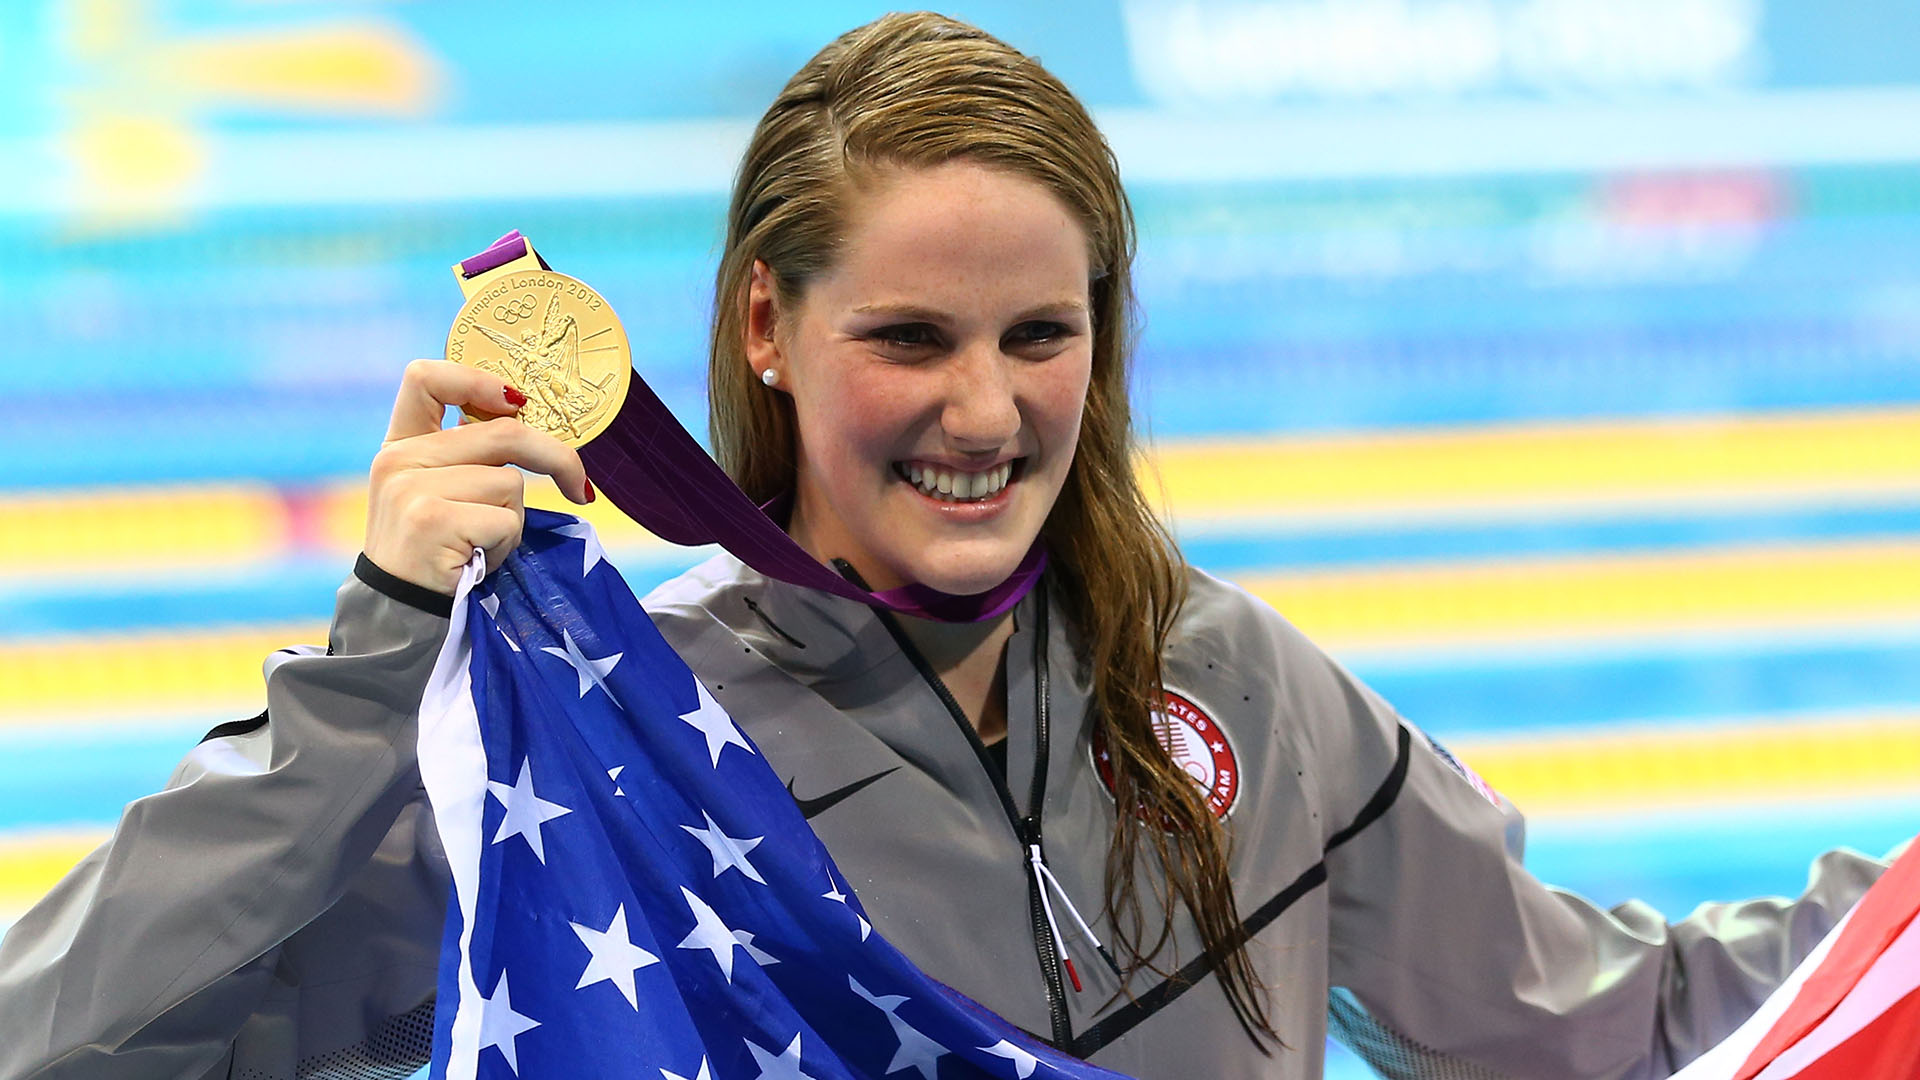 Olympic gold medalist reveals post-Rio depression: 'The best is yet to come'